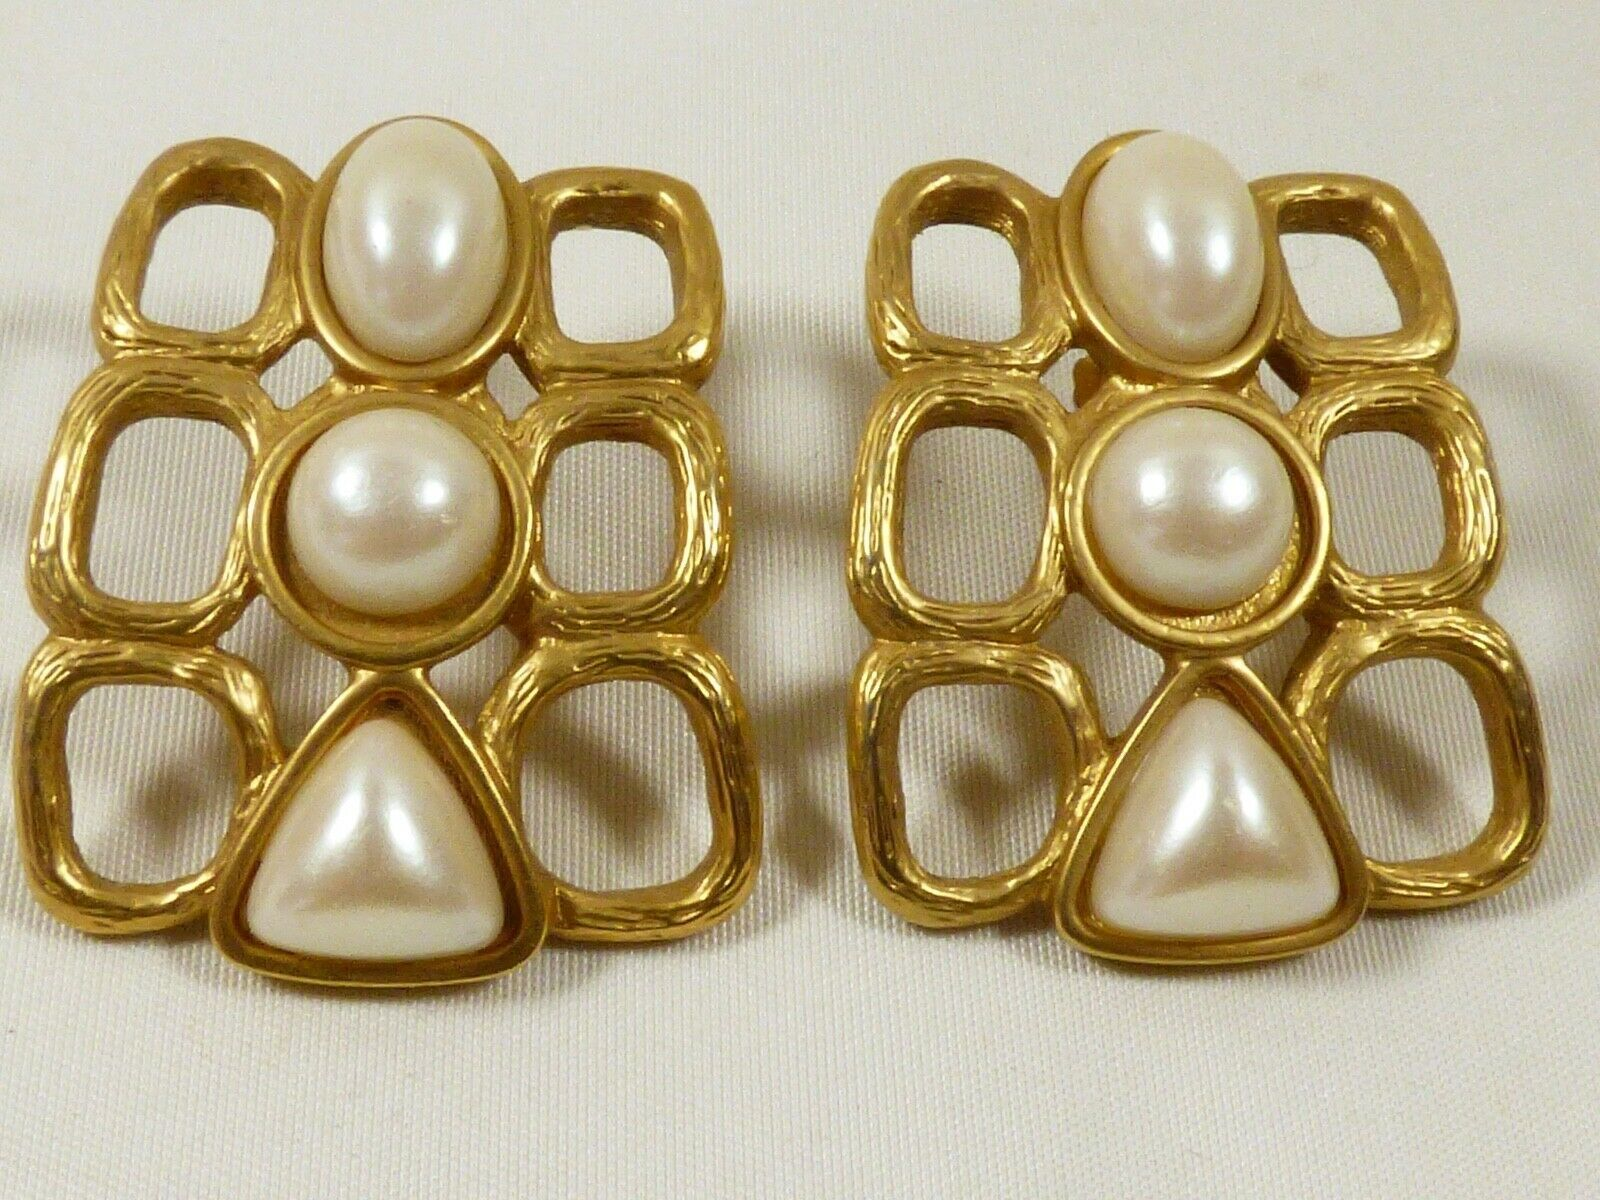 Primary image for VTG AVON Large White pearl faux beads gold tone earrings